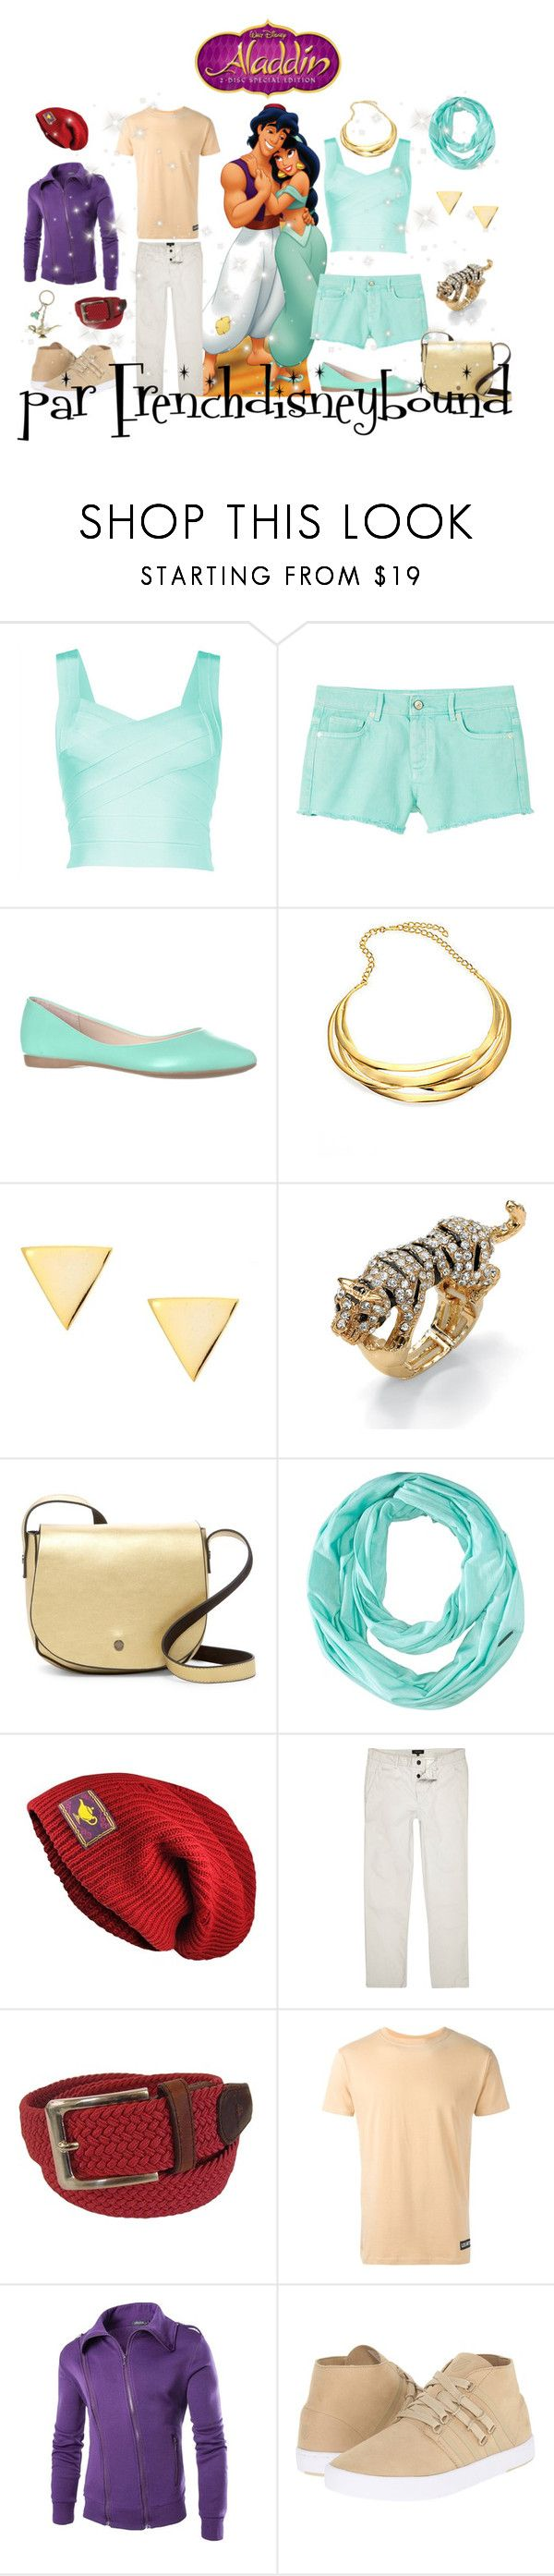 """Aladdin et Jasmine (Aladdin)"" by frenchdisneybound ❤ liked on Polyvore featuring MANGO, Kenneth Jay Lane, Dainty Edge, Palm Beach Jewelry, Deux Lux, Smartwool, River Island, Tyler & Tyler, LES (ART)ISTS and K-Swiss"